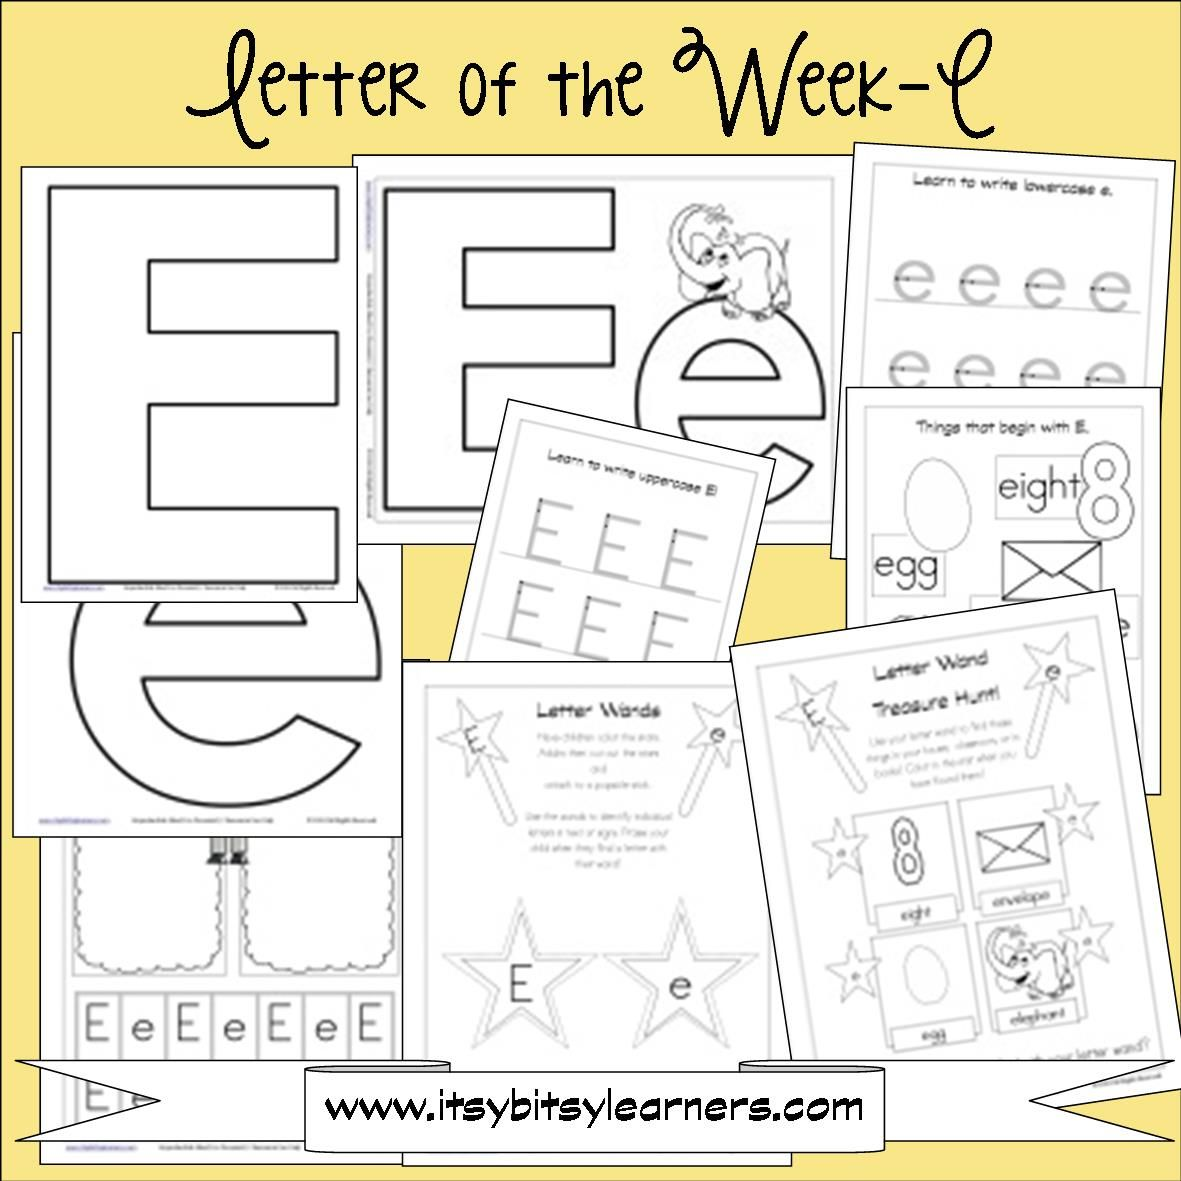 Letter E Preschool Printables Free Also Has Links To Other Letter Sets And Recommended Books